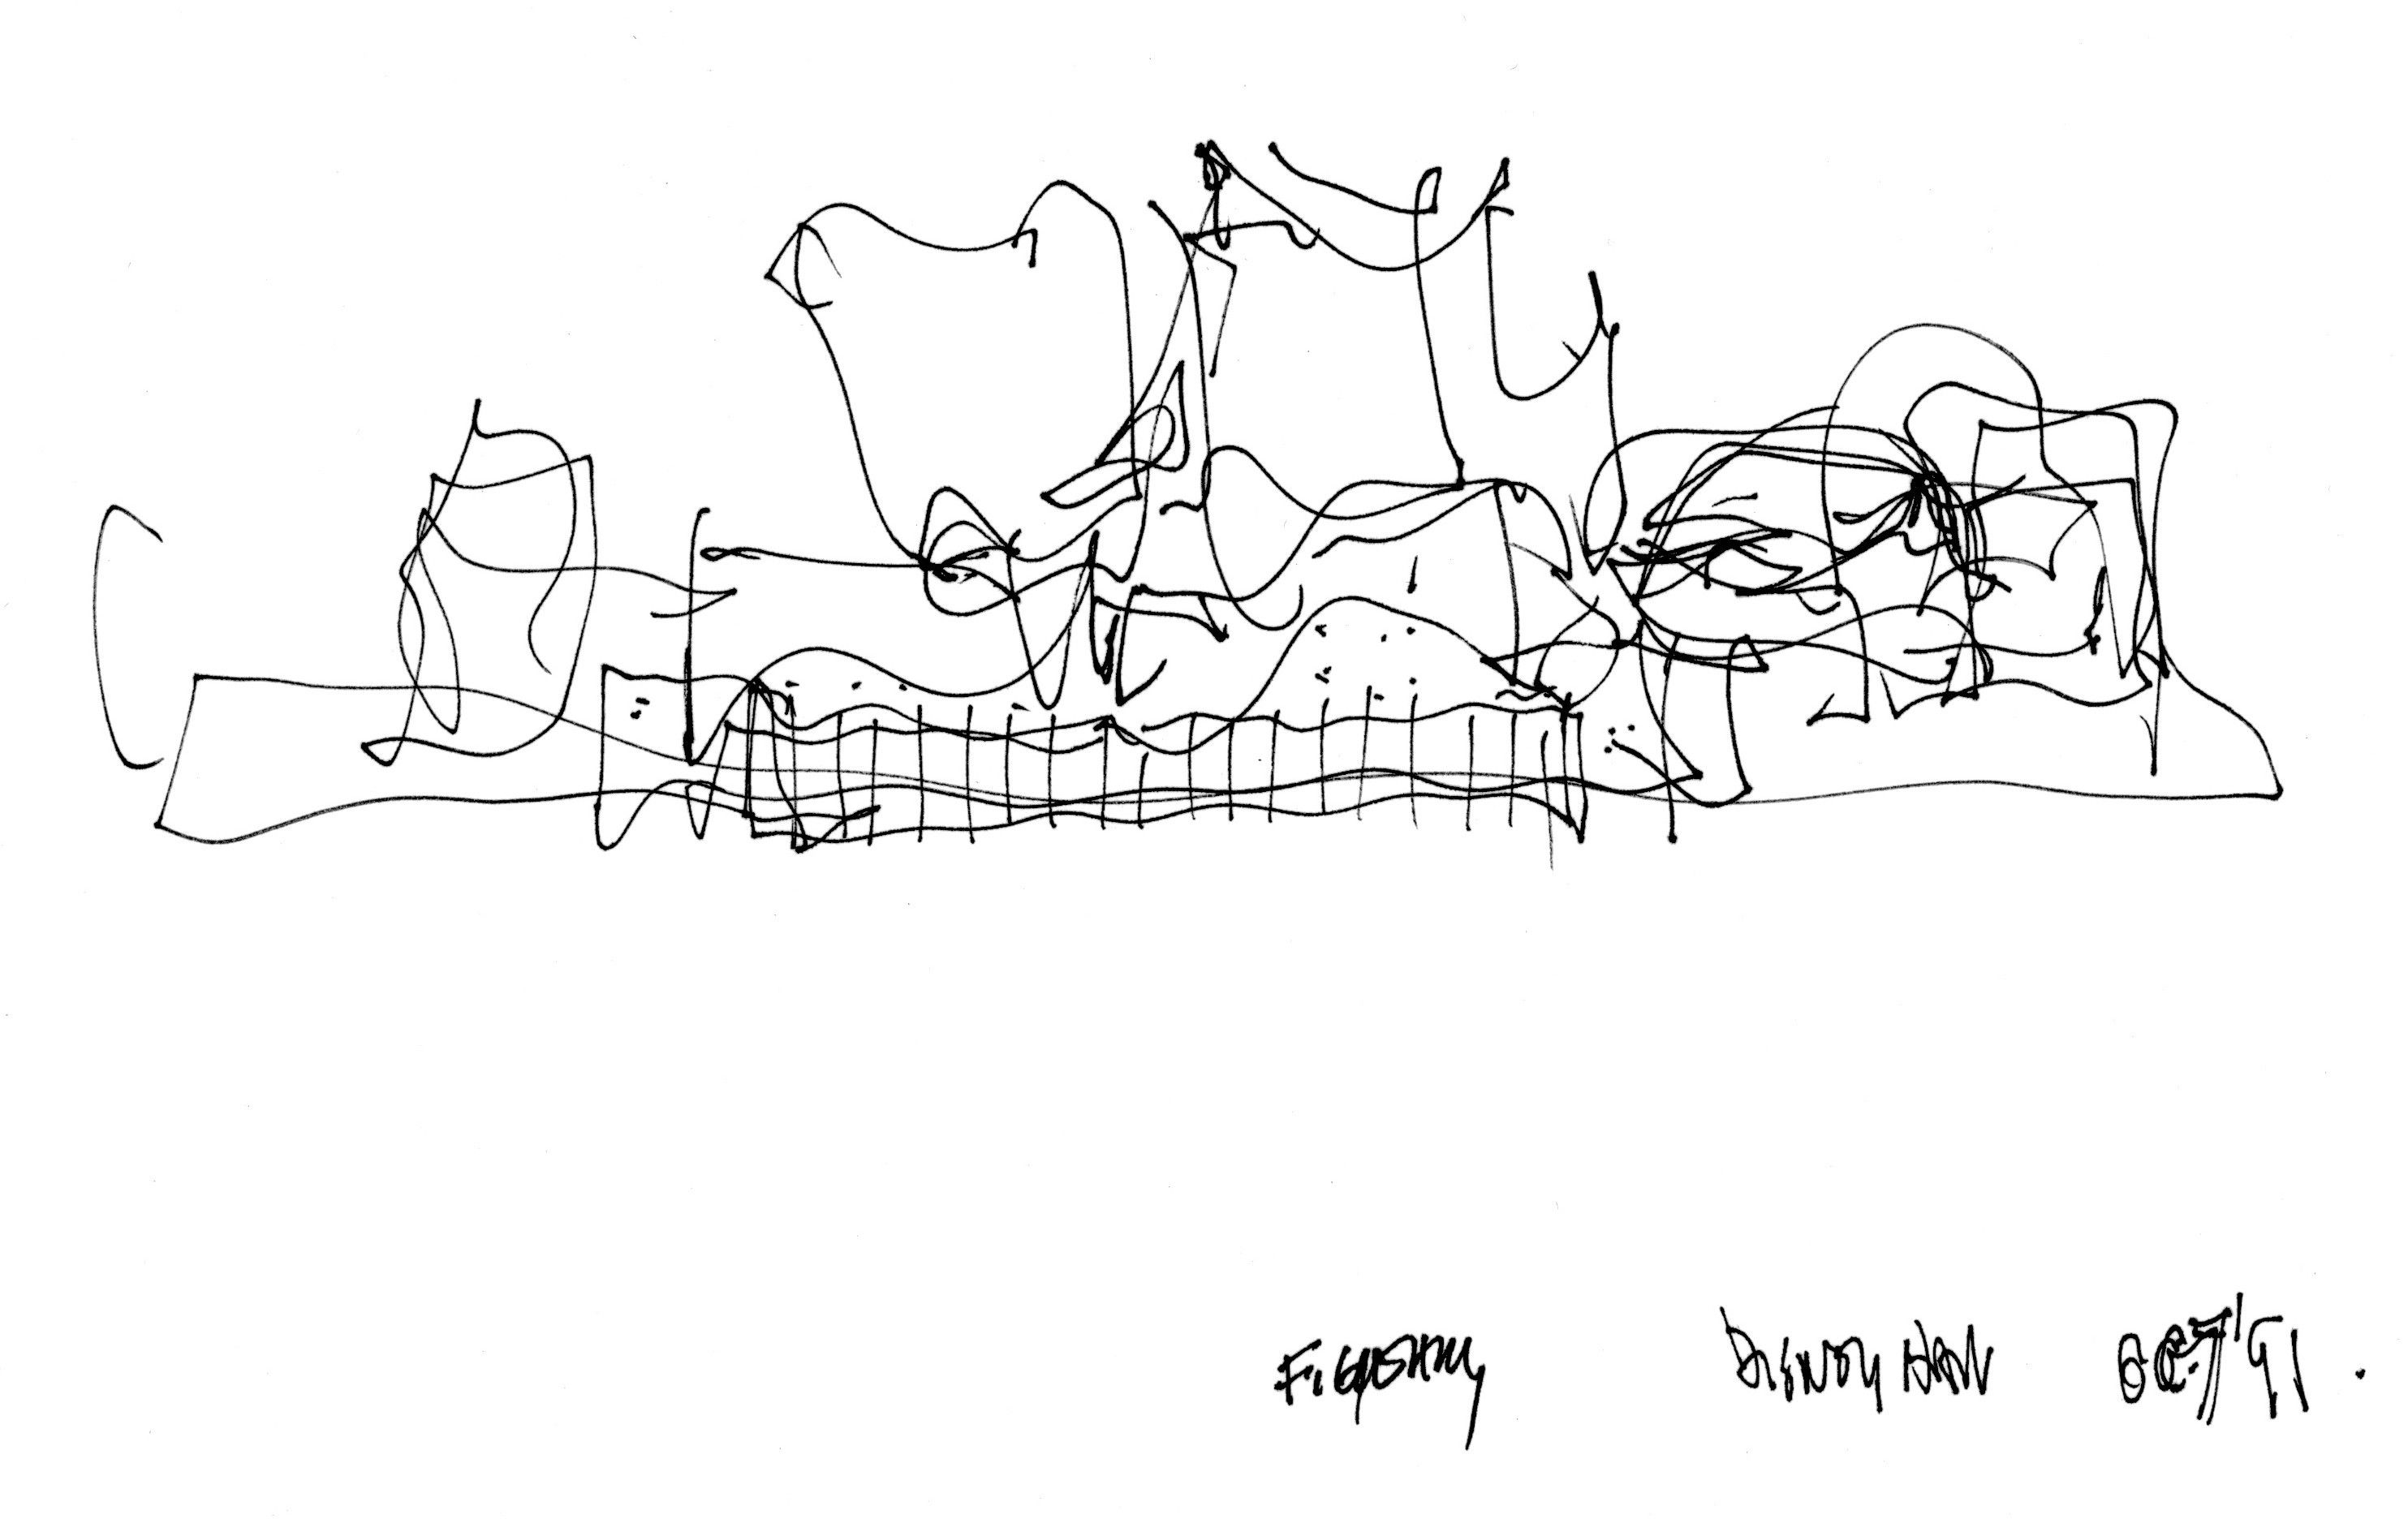 Sketch By Frank Gehry Of The Walt Disney Concert Hall